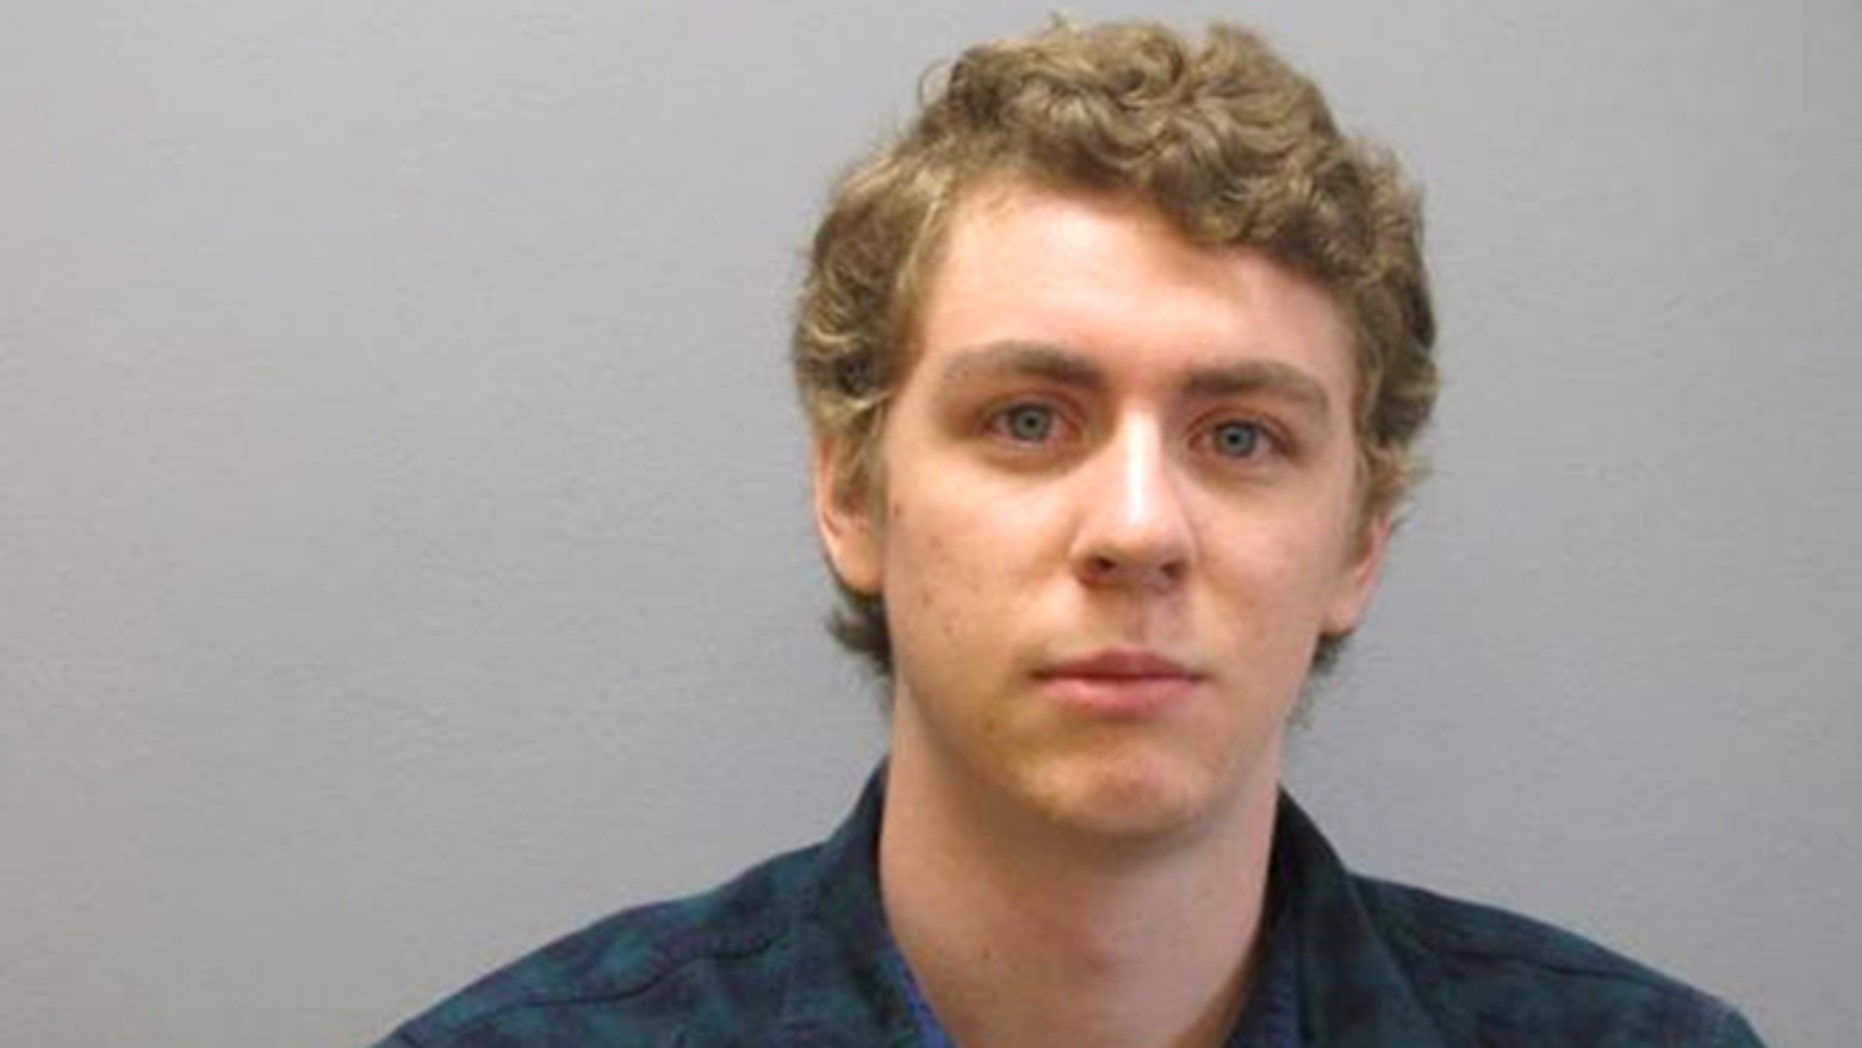 This Tuesday, Sept. 6, 2016 released by the Greene County Sheriff's Office, photo shows Brock Turner at the Greene County Sheriff's Office in Xenia, Ohio.